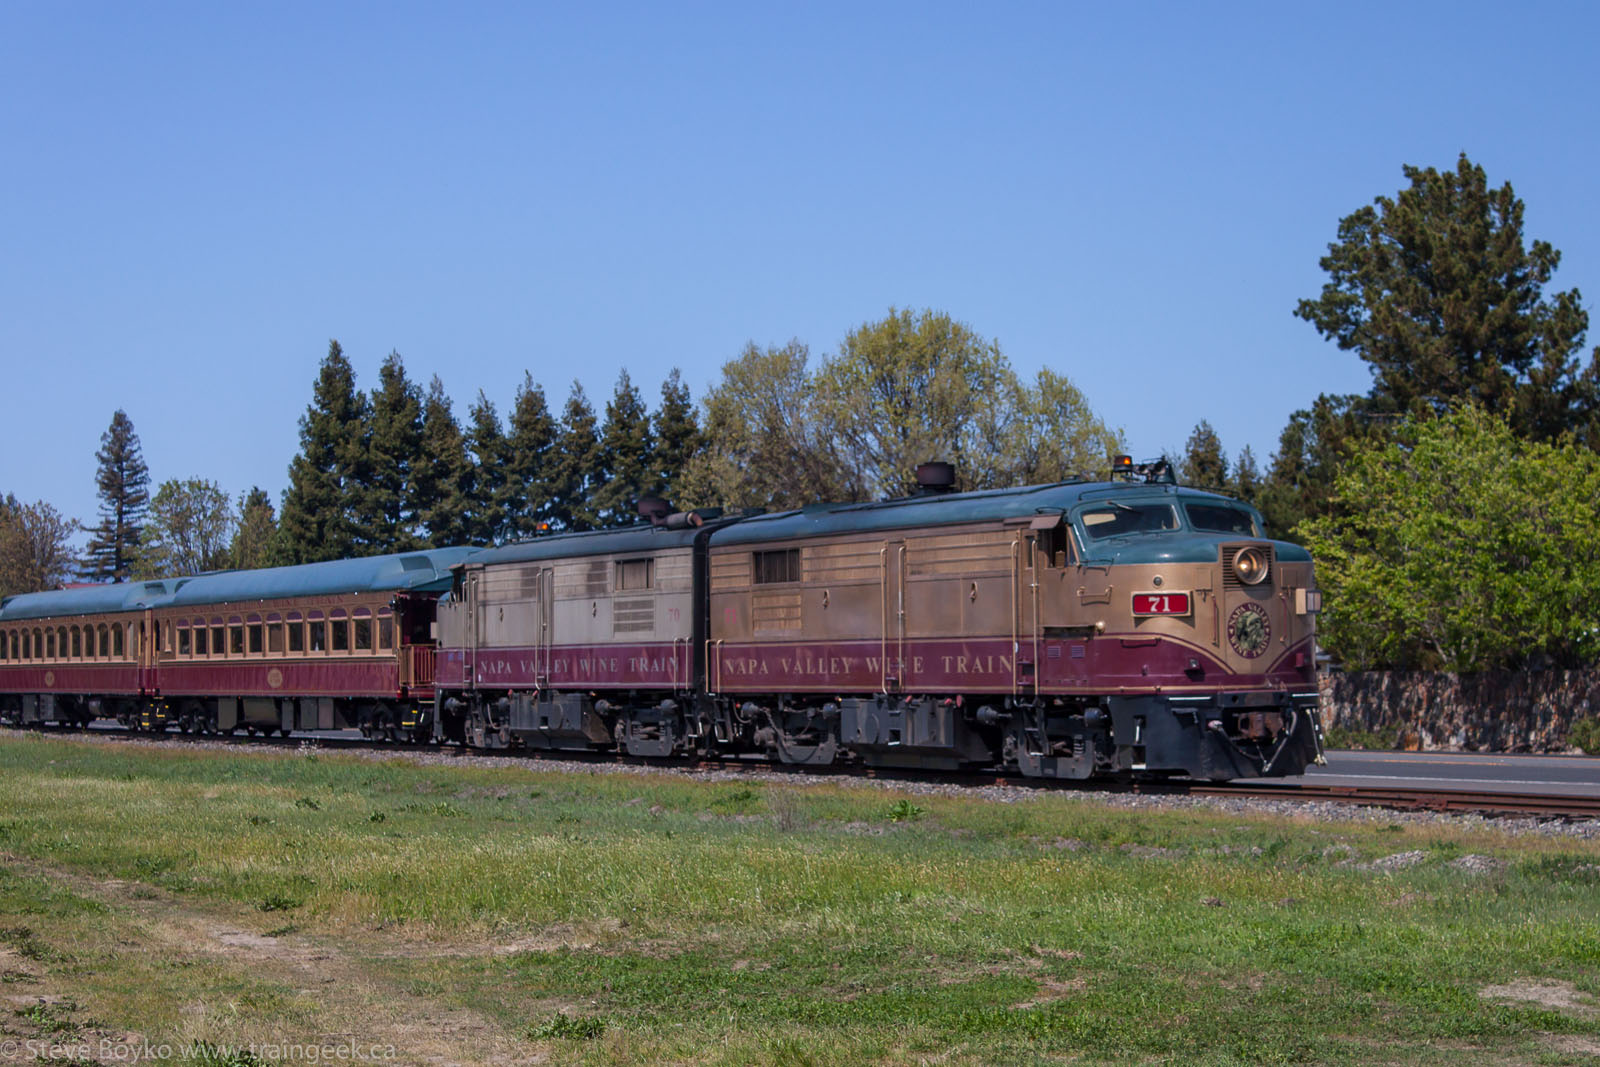 NVRR 71 and the Napa Valley Wine Train 2014/03/23